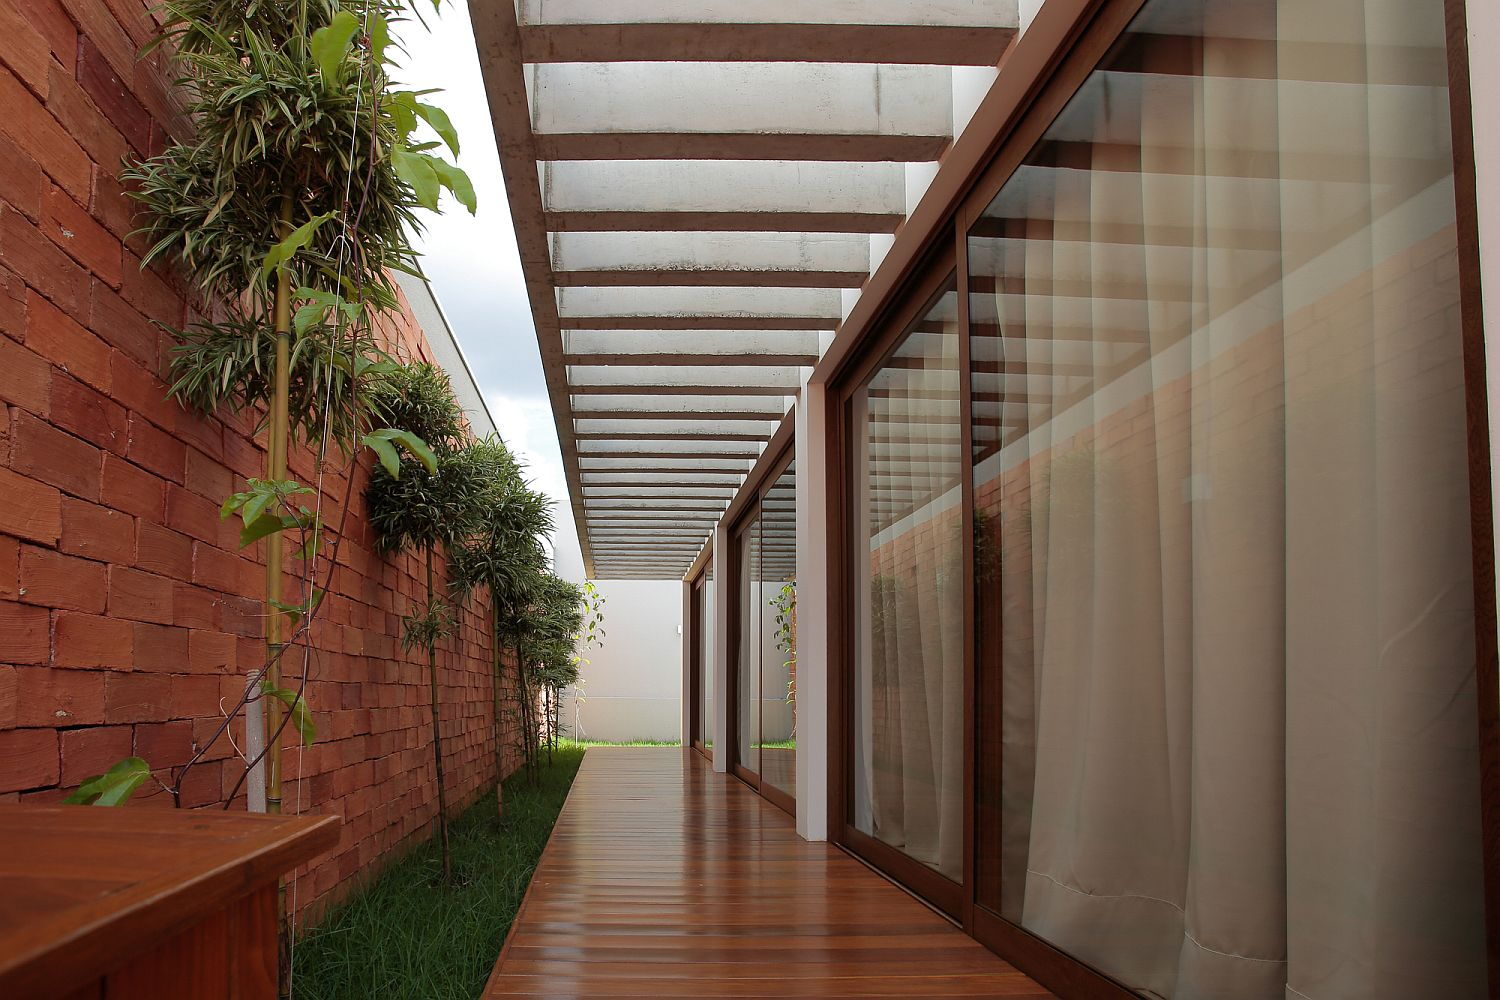 Long walkways around the house with ample shade